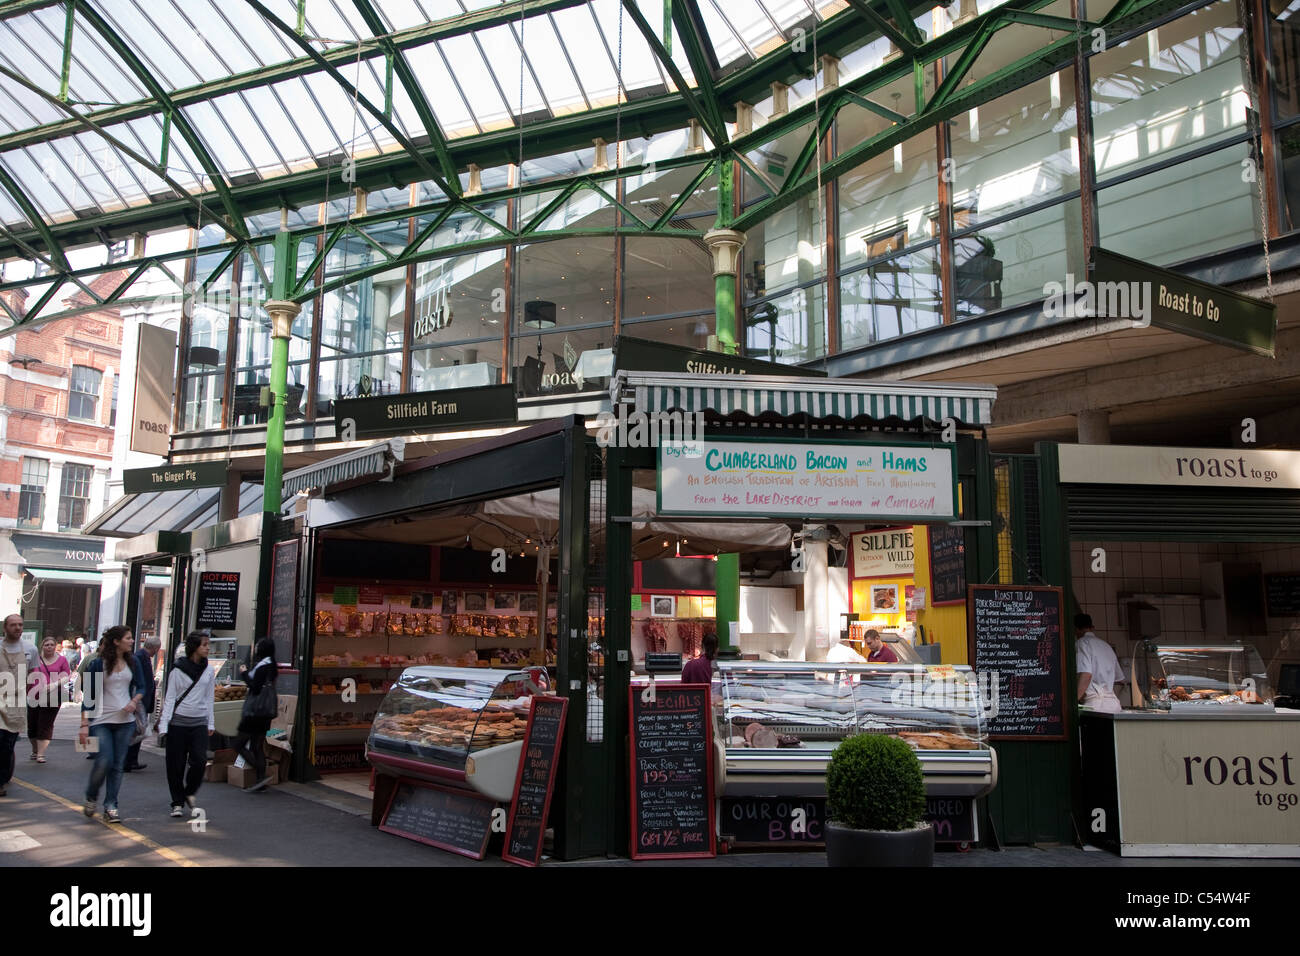 People Shopping in Borough Market, London - Stock Image